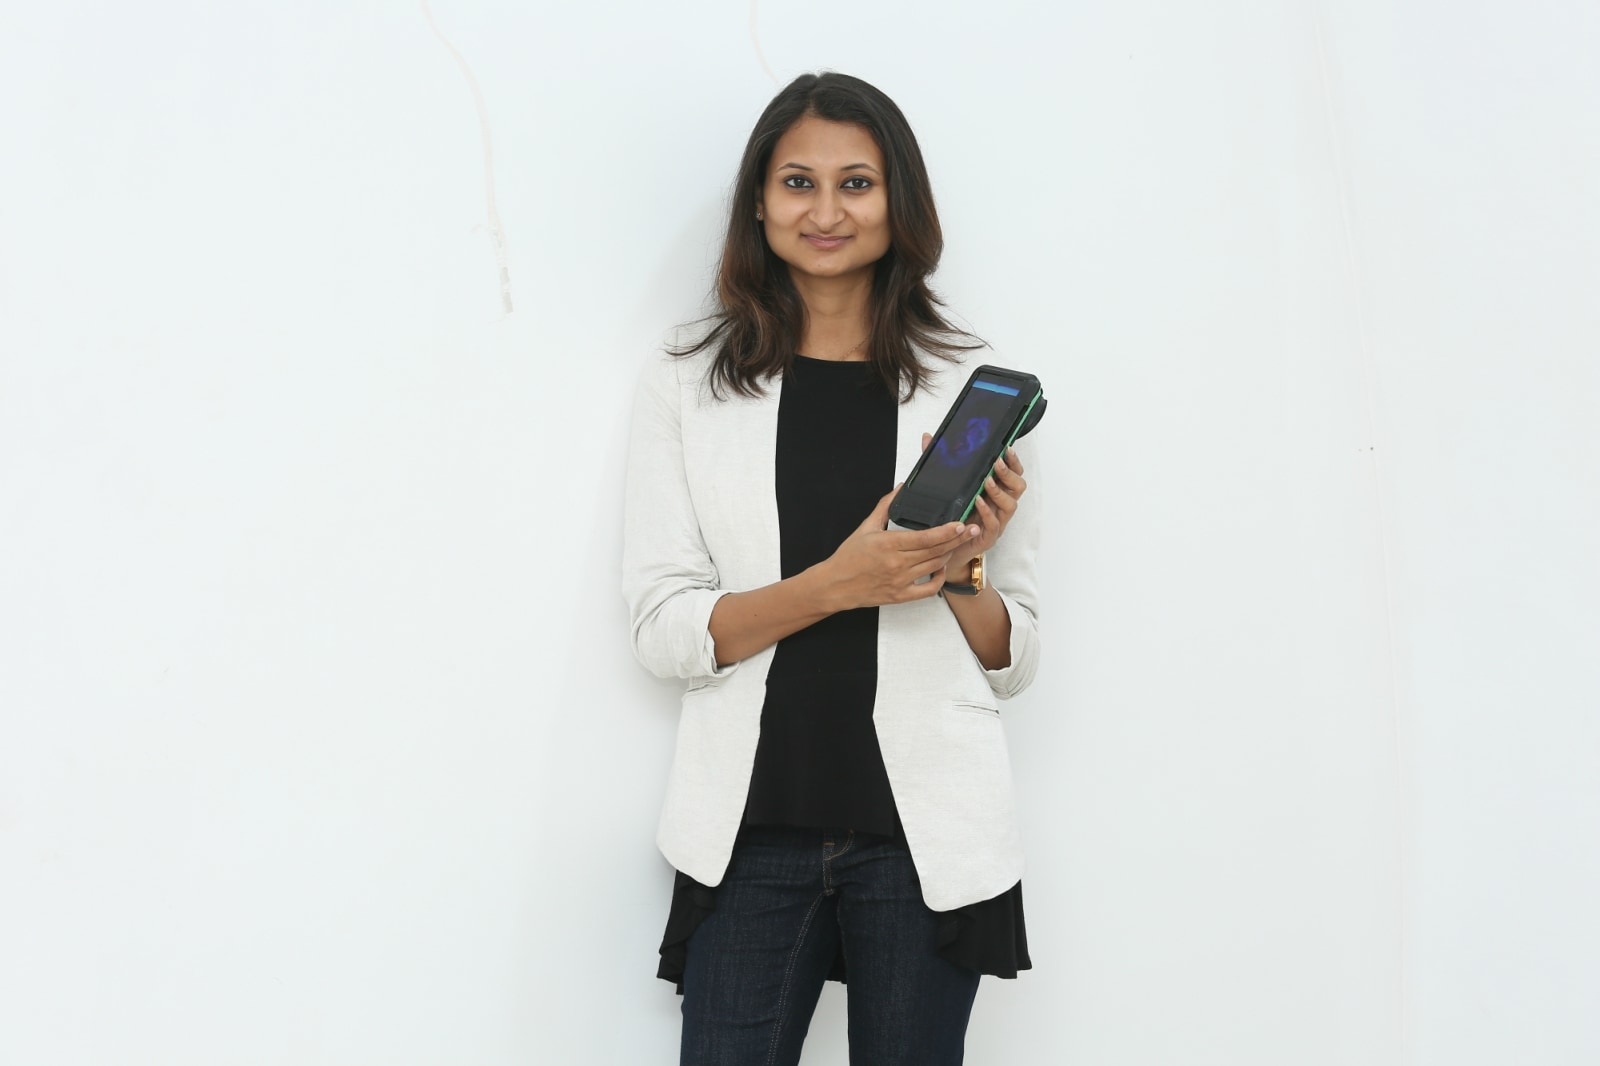 Geethanjali Radhakrishnan: She is a biomedical engineer, who worked in research and then as a software developer at Tata Consultancy Services. After four years, she felt that her biomedical background would be better utilised to develop solutions for healthcare problems in India. She founded Adiuvo Diagnostics in 2015.